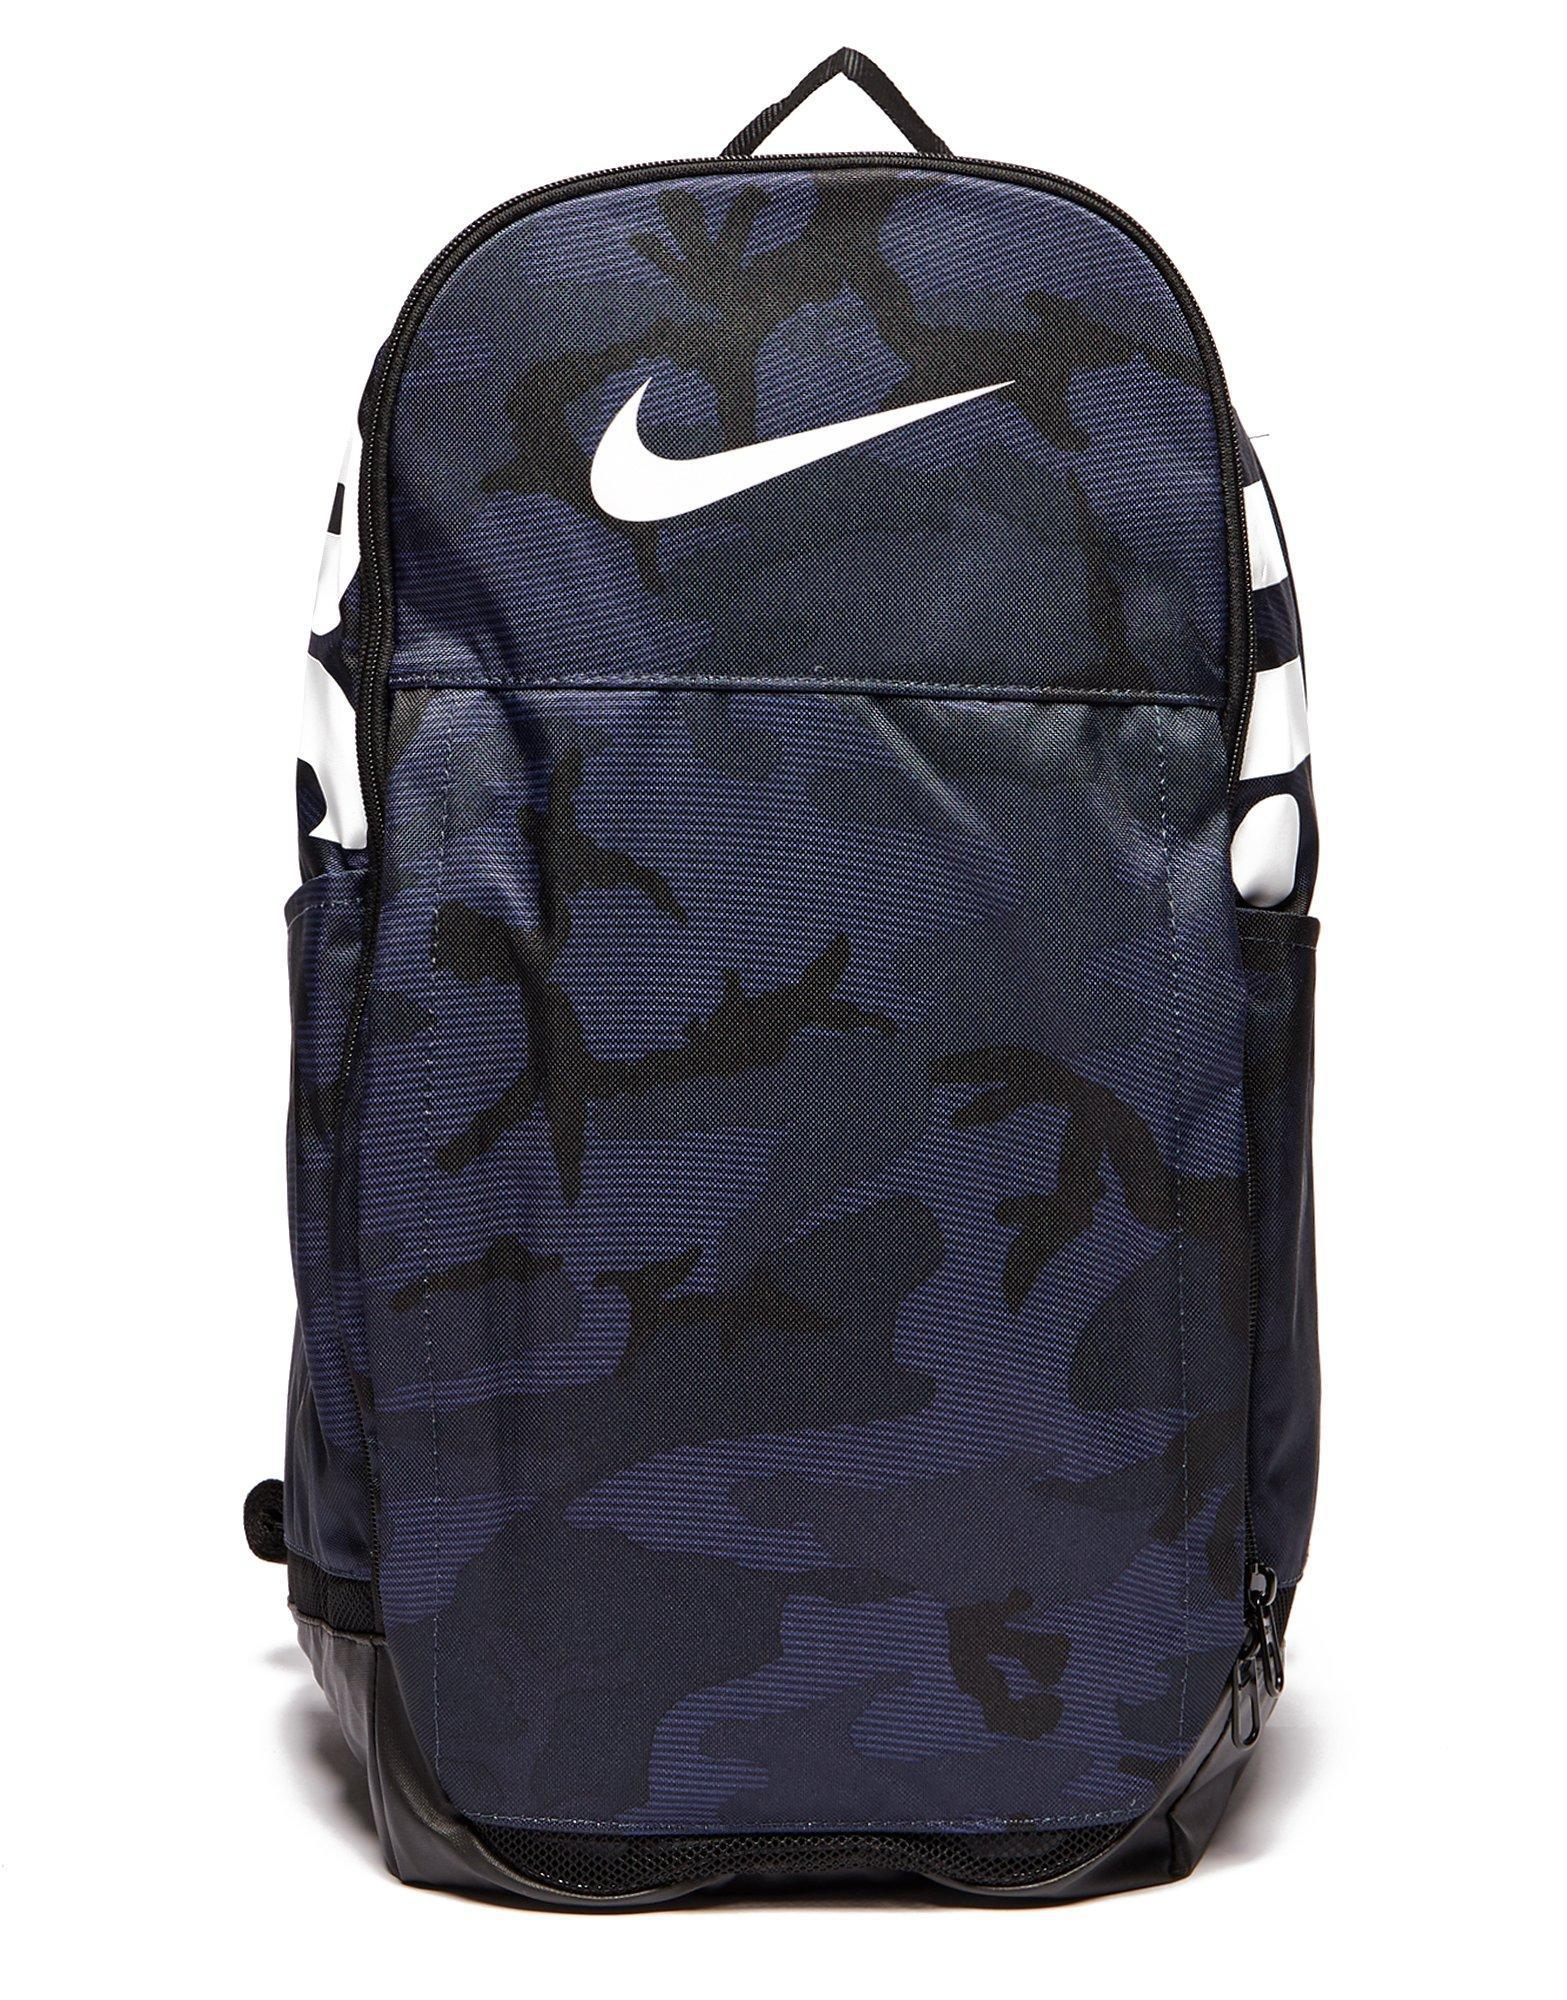 829241977f581c Nike Brasilia Training Backpack in Blue - Lyst